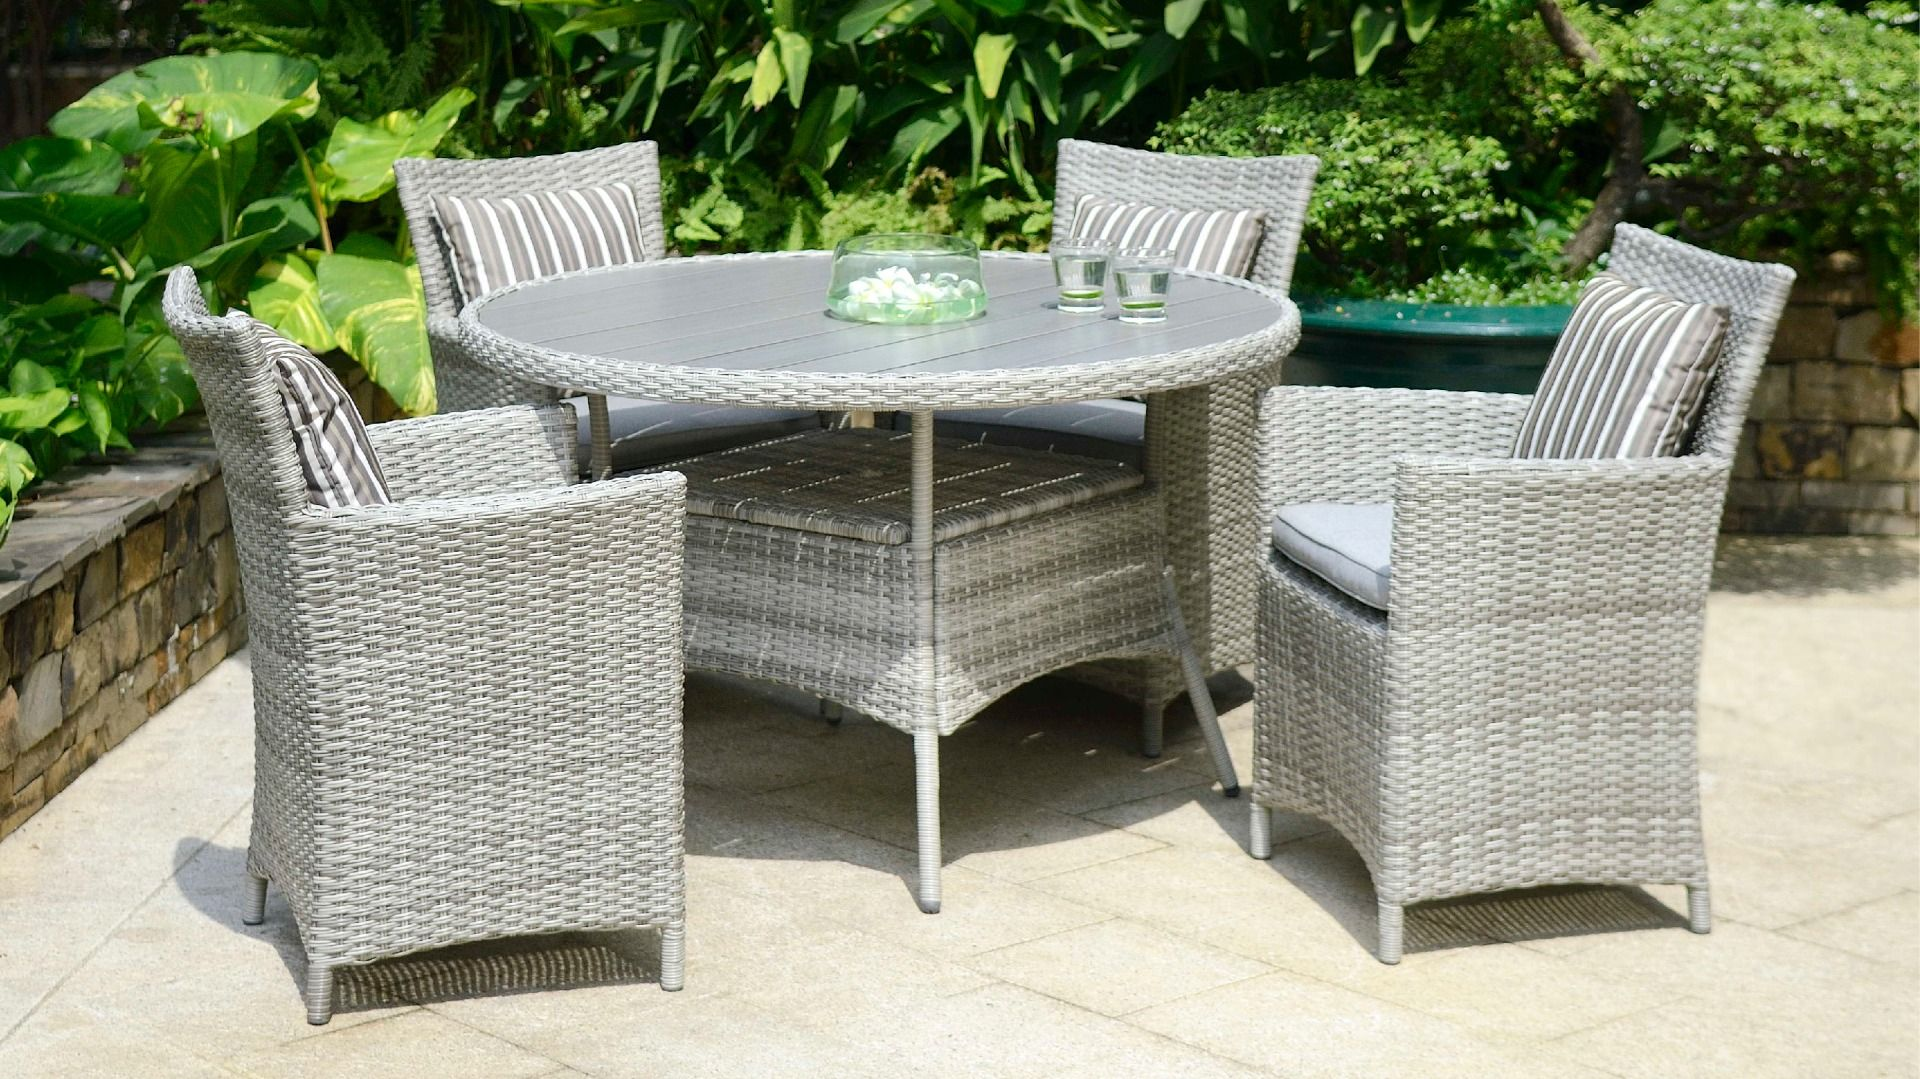 LifestyleGarden Aruba 4 Seat Set